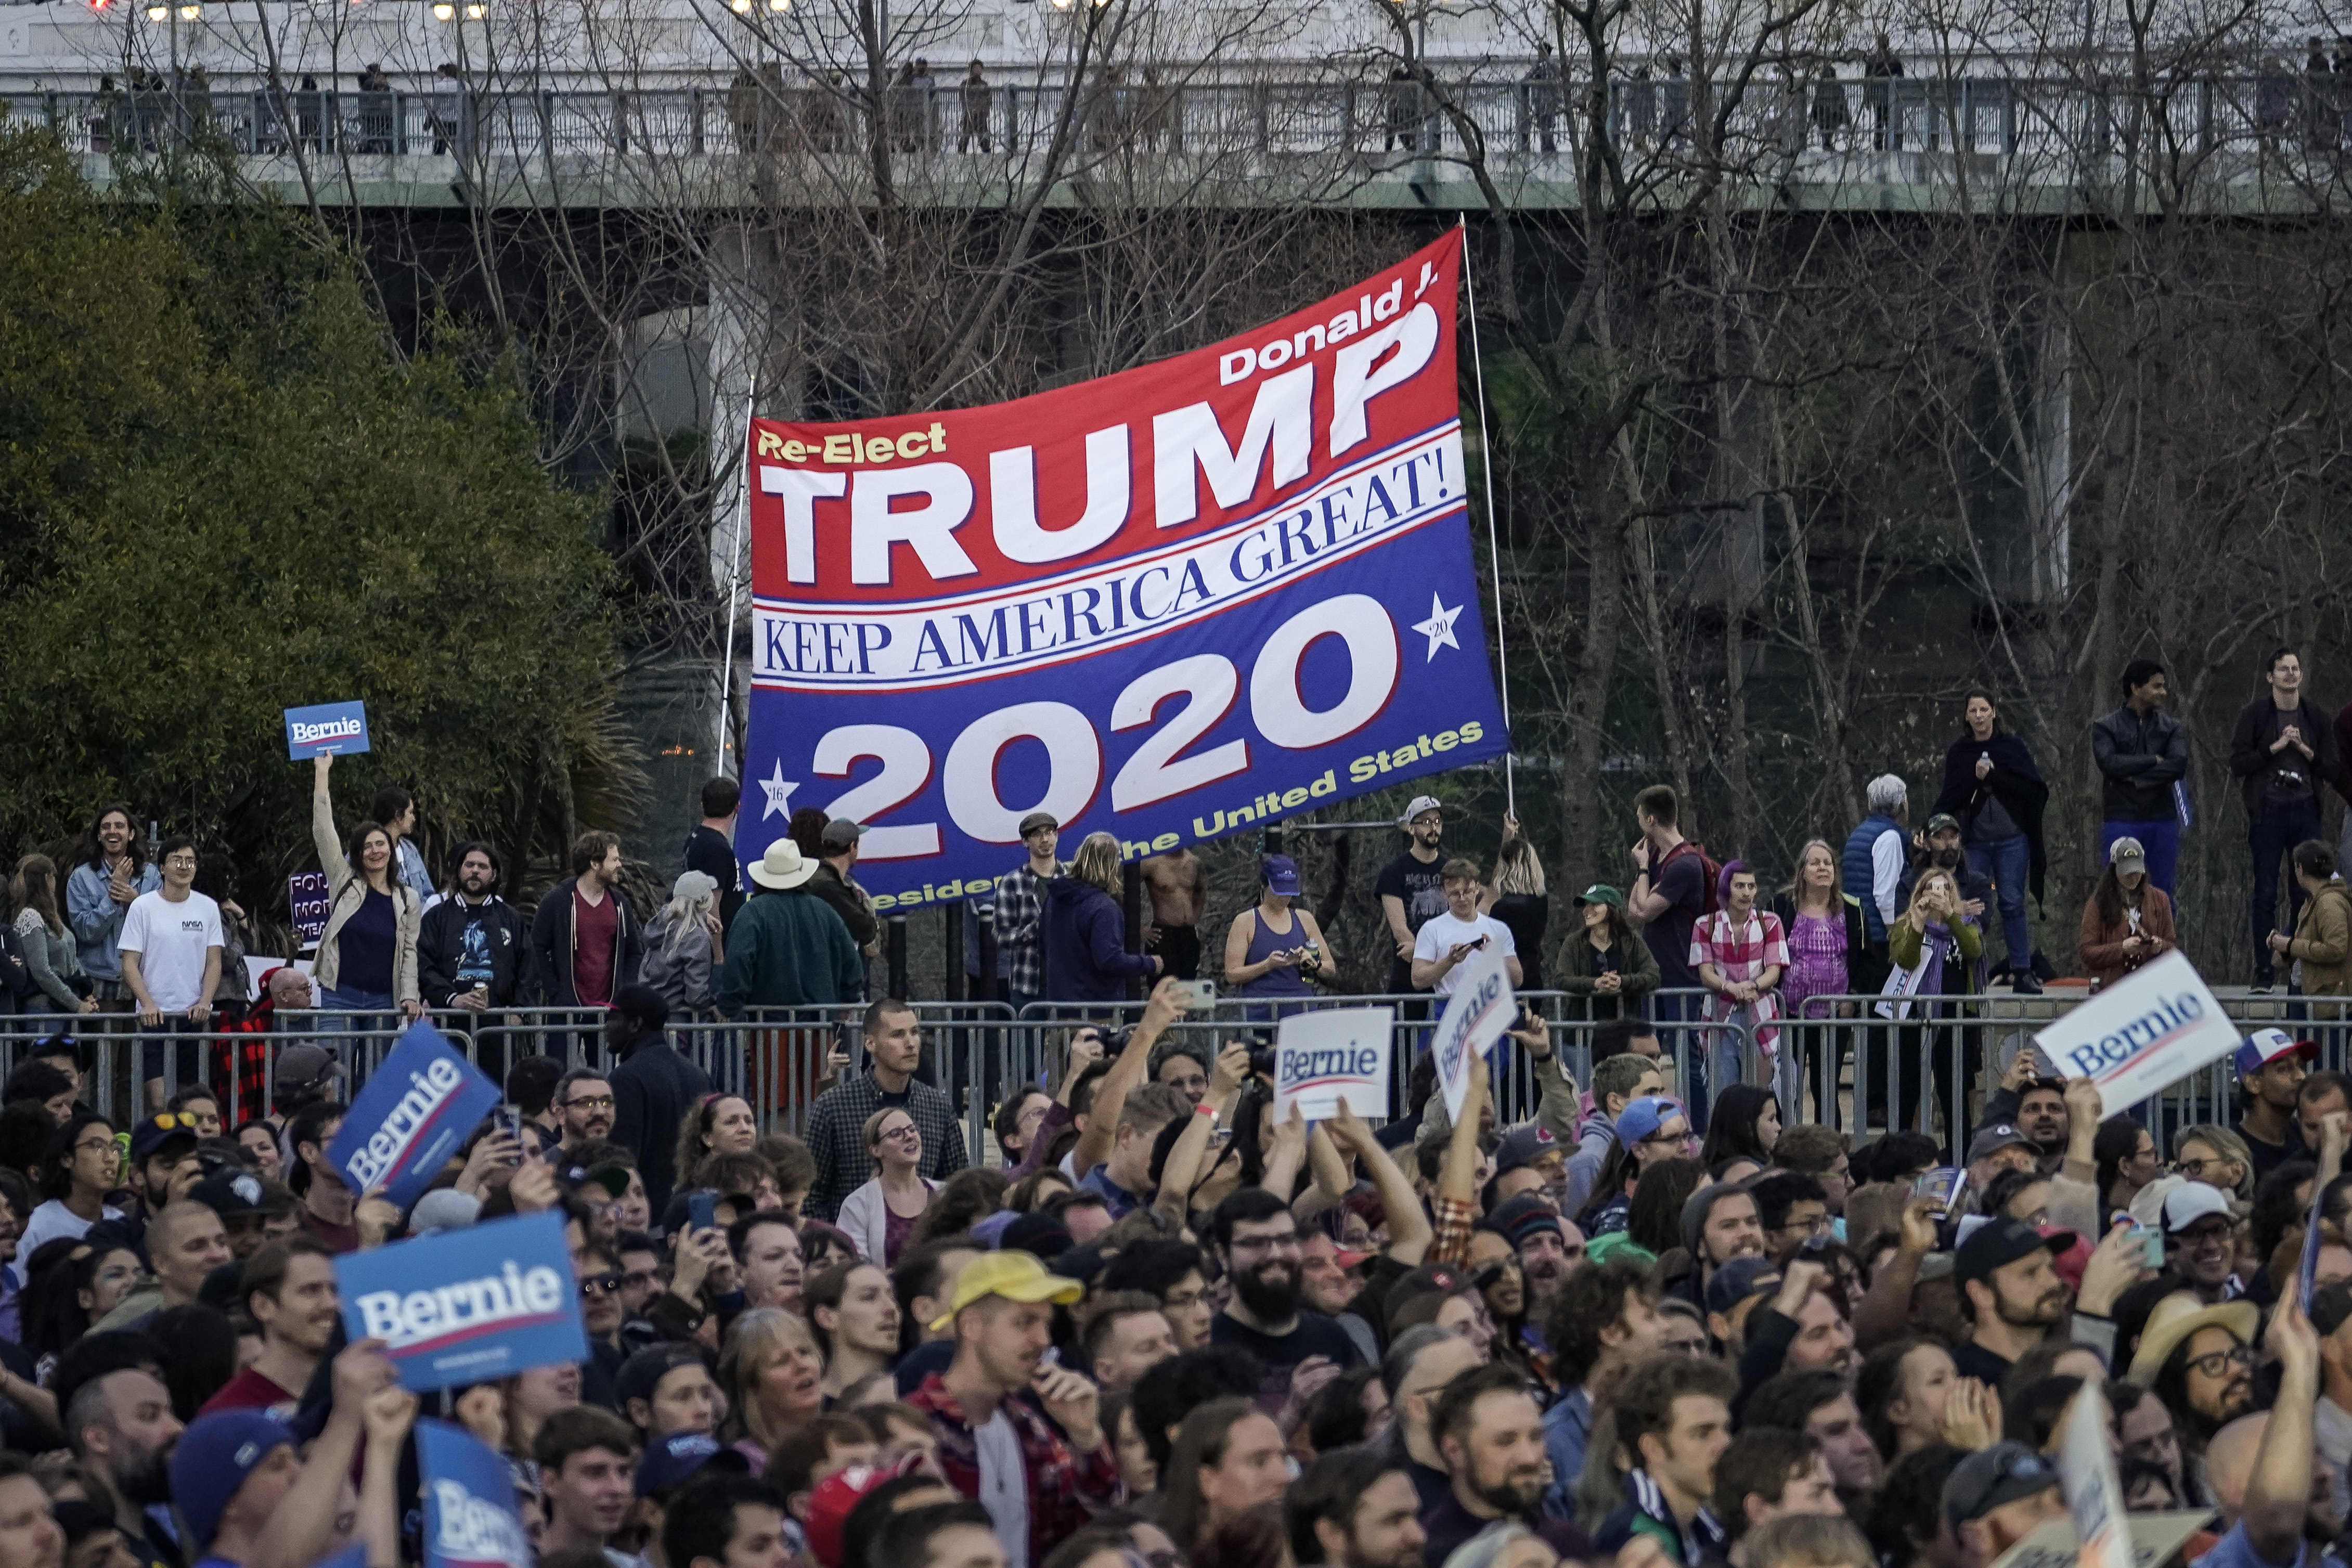 AUSTIN, TX - FEBRUARY 23: Supporters of President Donald Trump hold up a banner just outside the venue while Democratic presidential candidate Sen. Bernie Sanders (I-VT) speaks during a campaign rally at Vic Mathias Shores Park on February 23, 2020 in Austin, Texas. With early voting underway in Texas, Sanders is holding four rallies in the delegate-rich state this weekend before traveling on to South Carolina. Texas holds their primary on Super Tuesday March 3rd, along with over a dozen other states. (Photo by Drew Angerer/Getty Images)